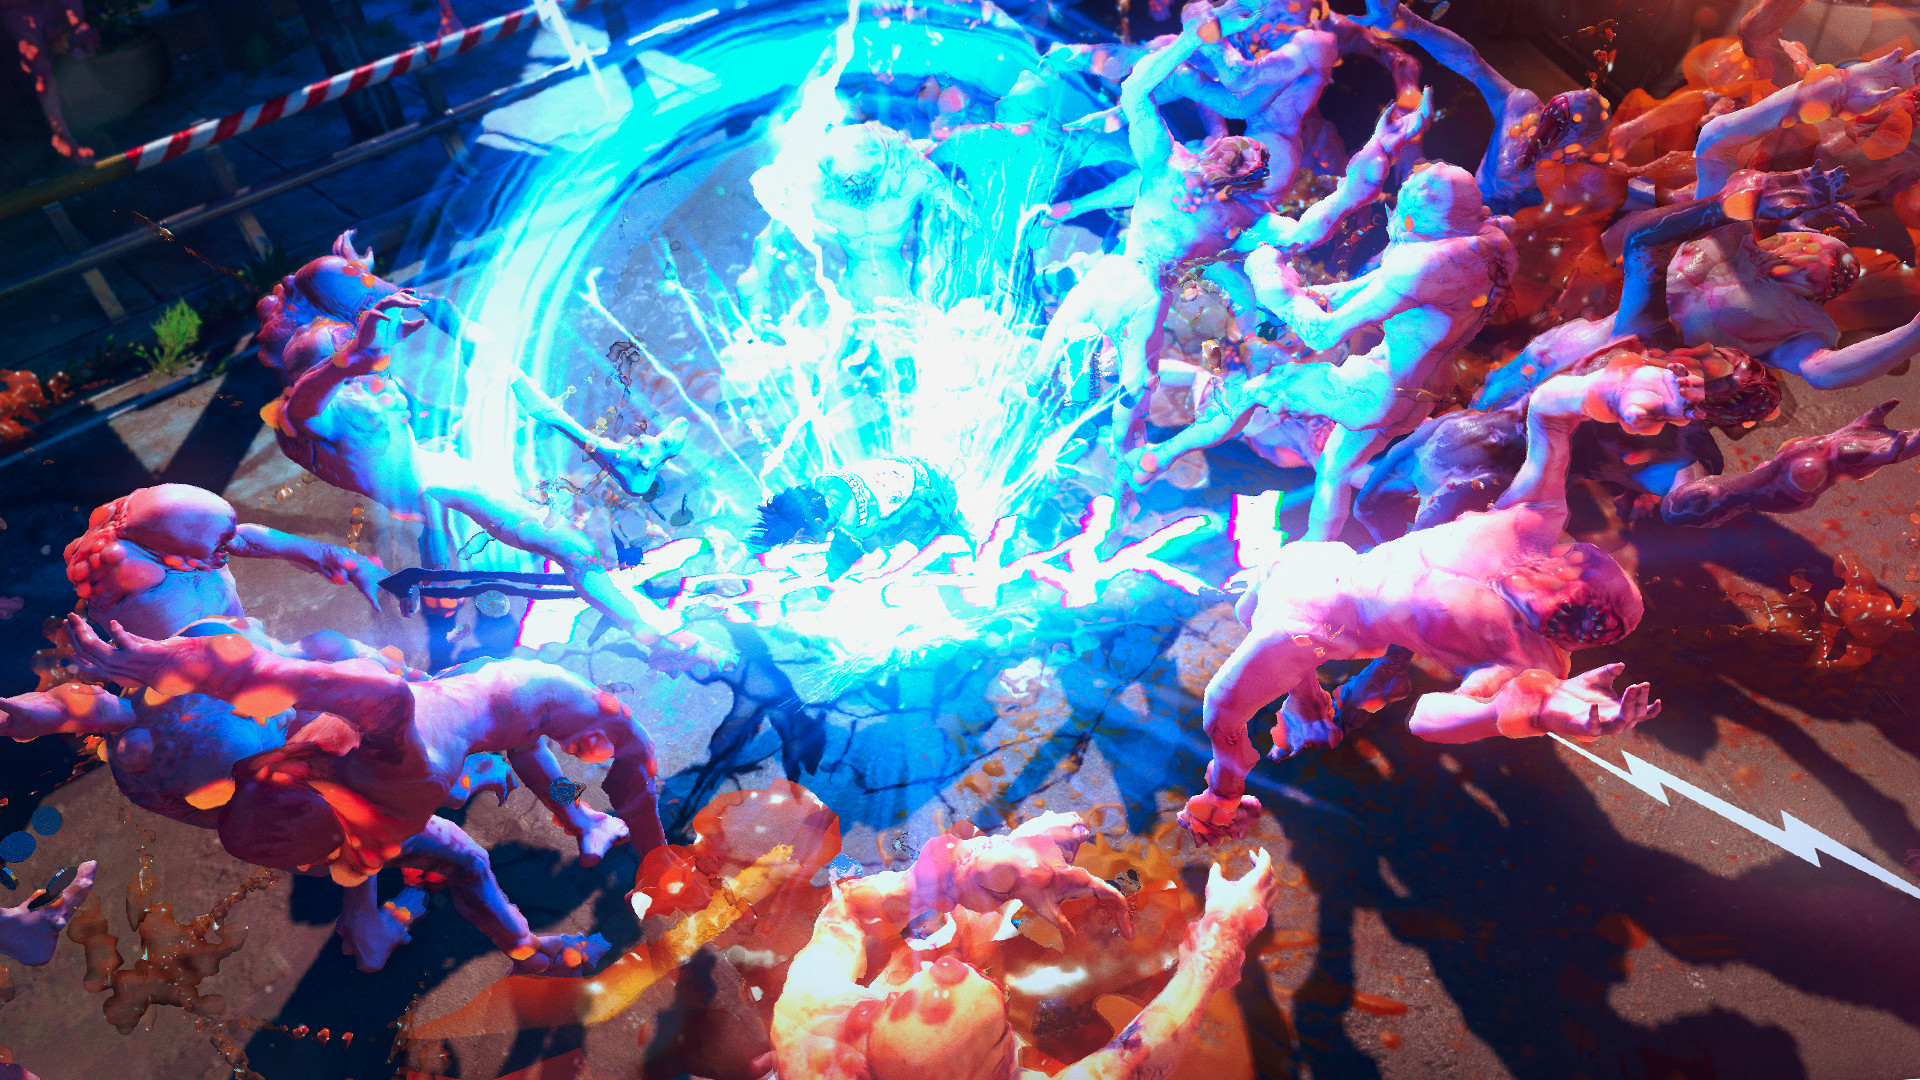 An explosive attack in Sunset Overdrive